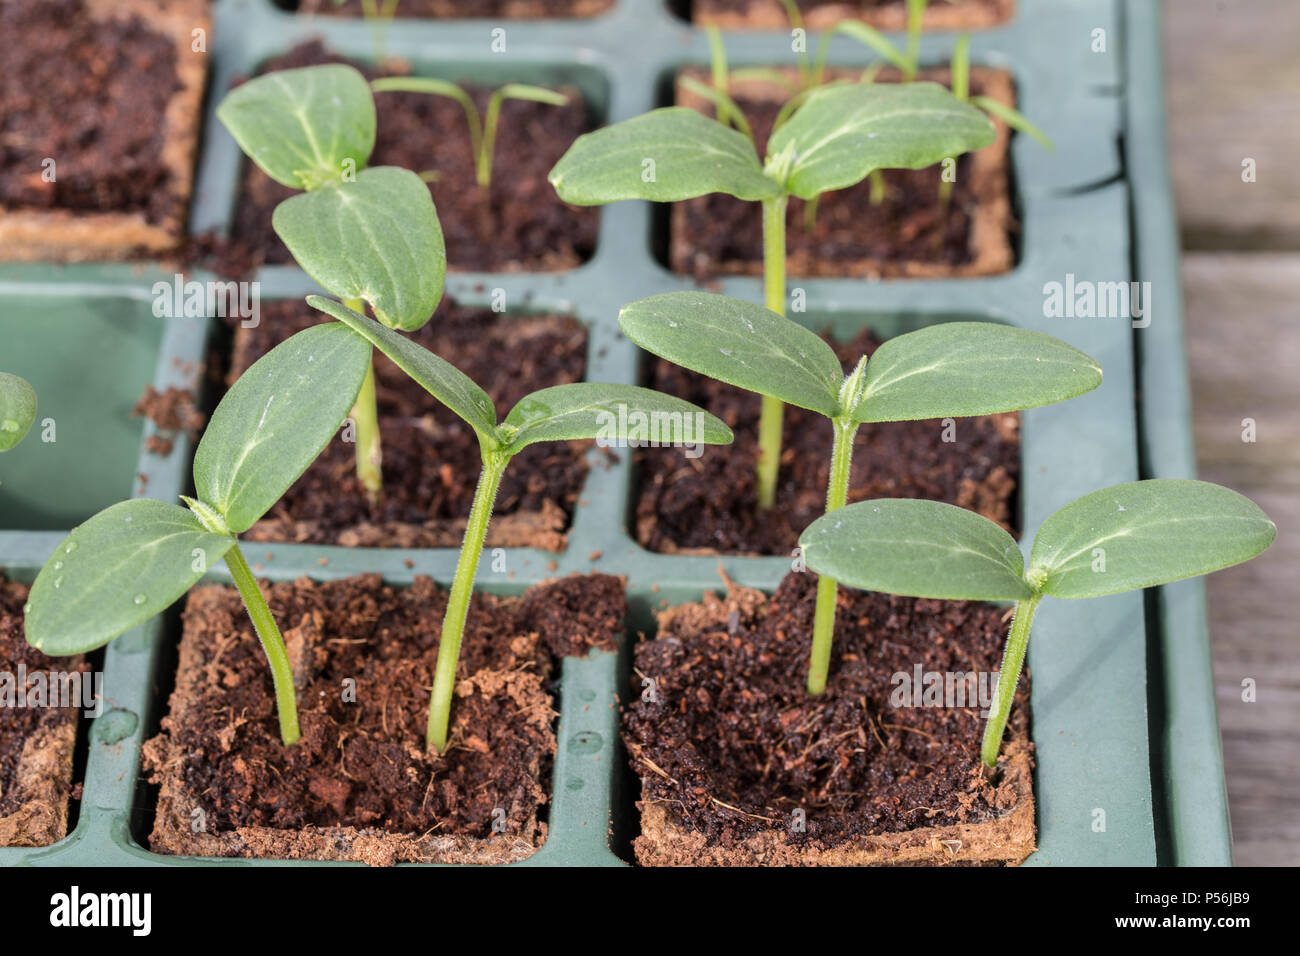 Young Komkommer or cucumber plants in a breeding tray Stock Photo